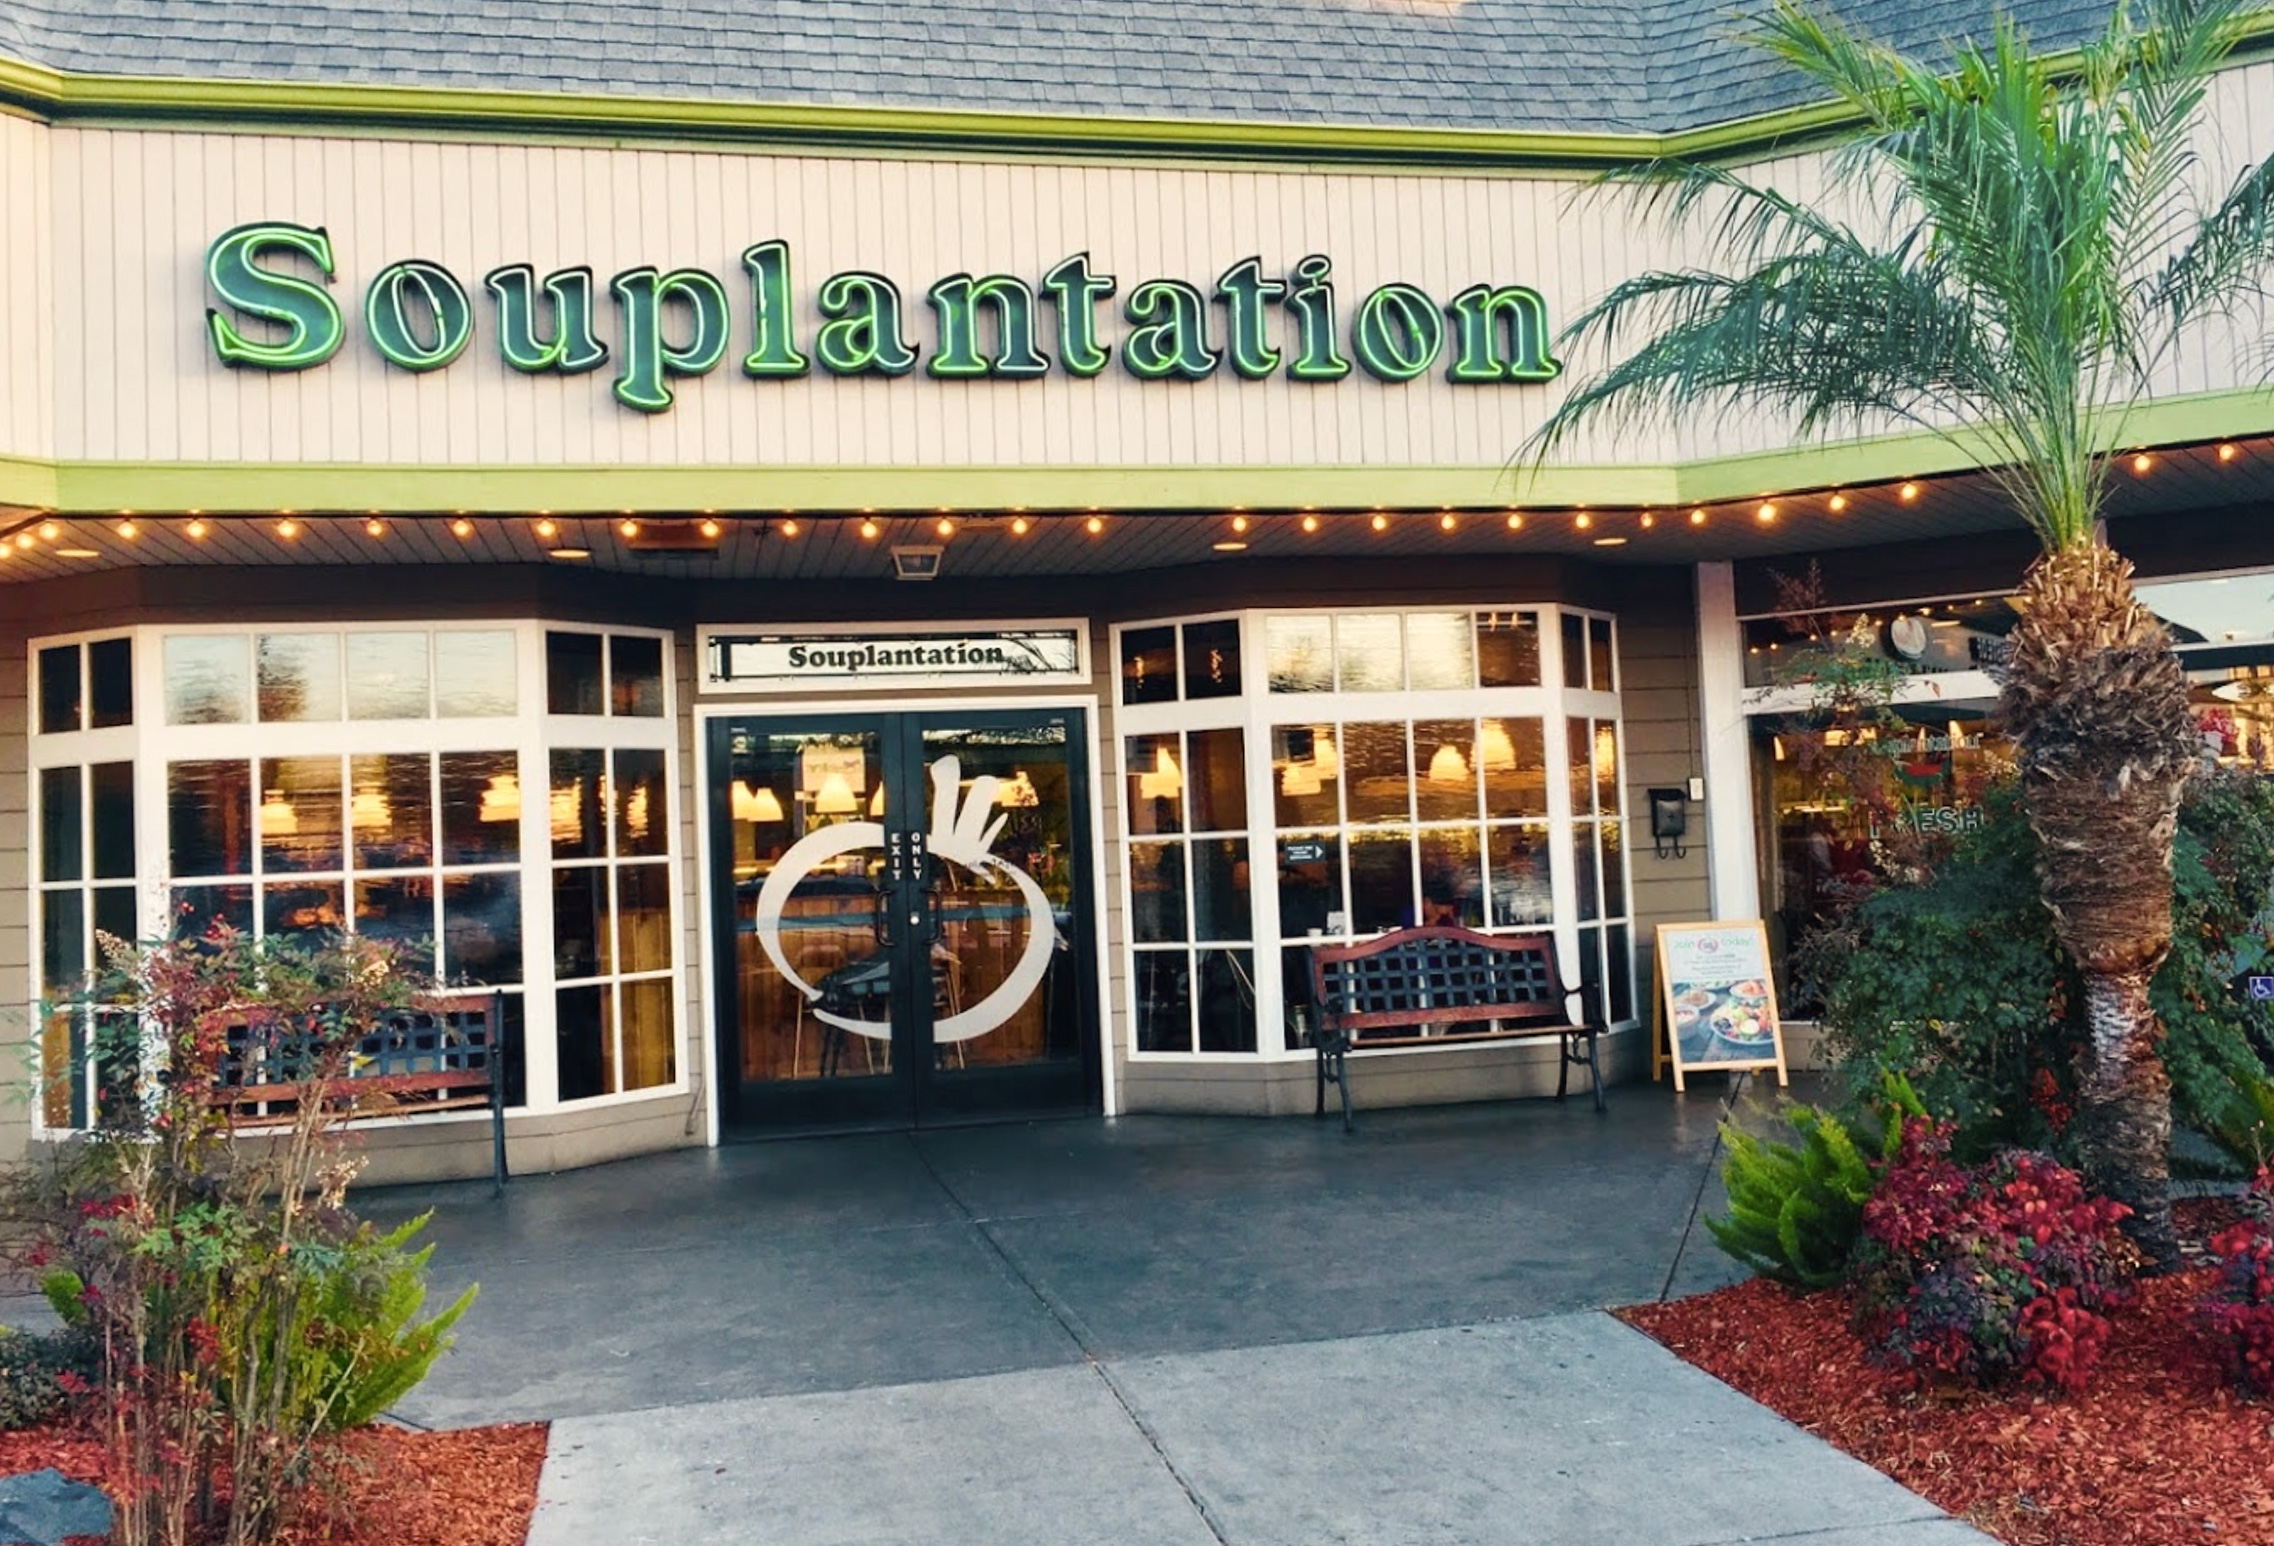 Souplantation number one, San Diego